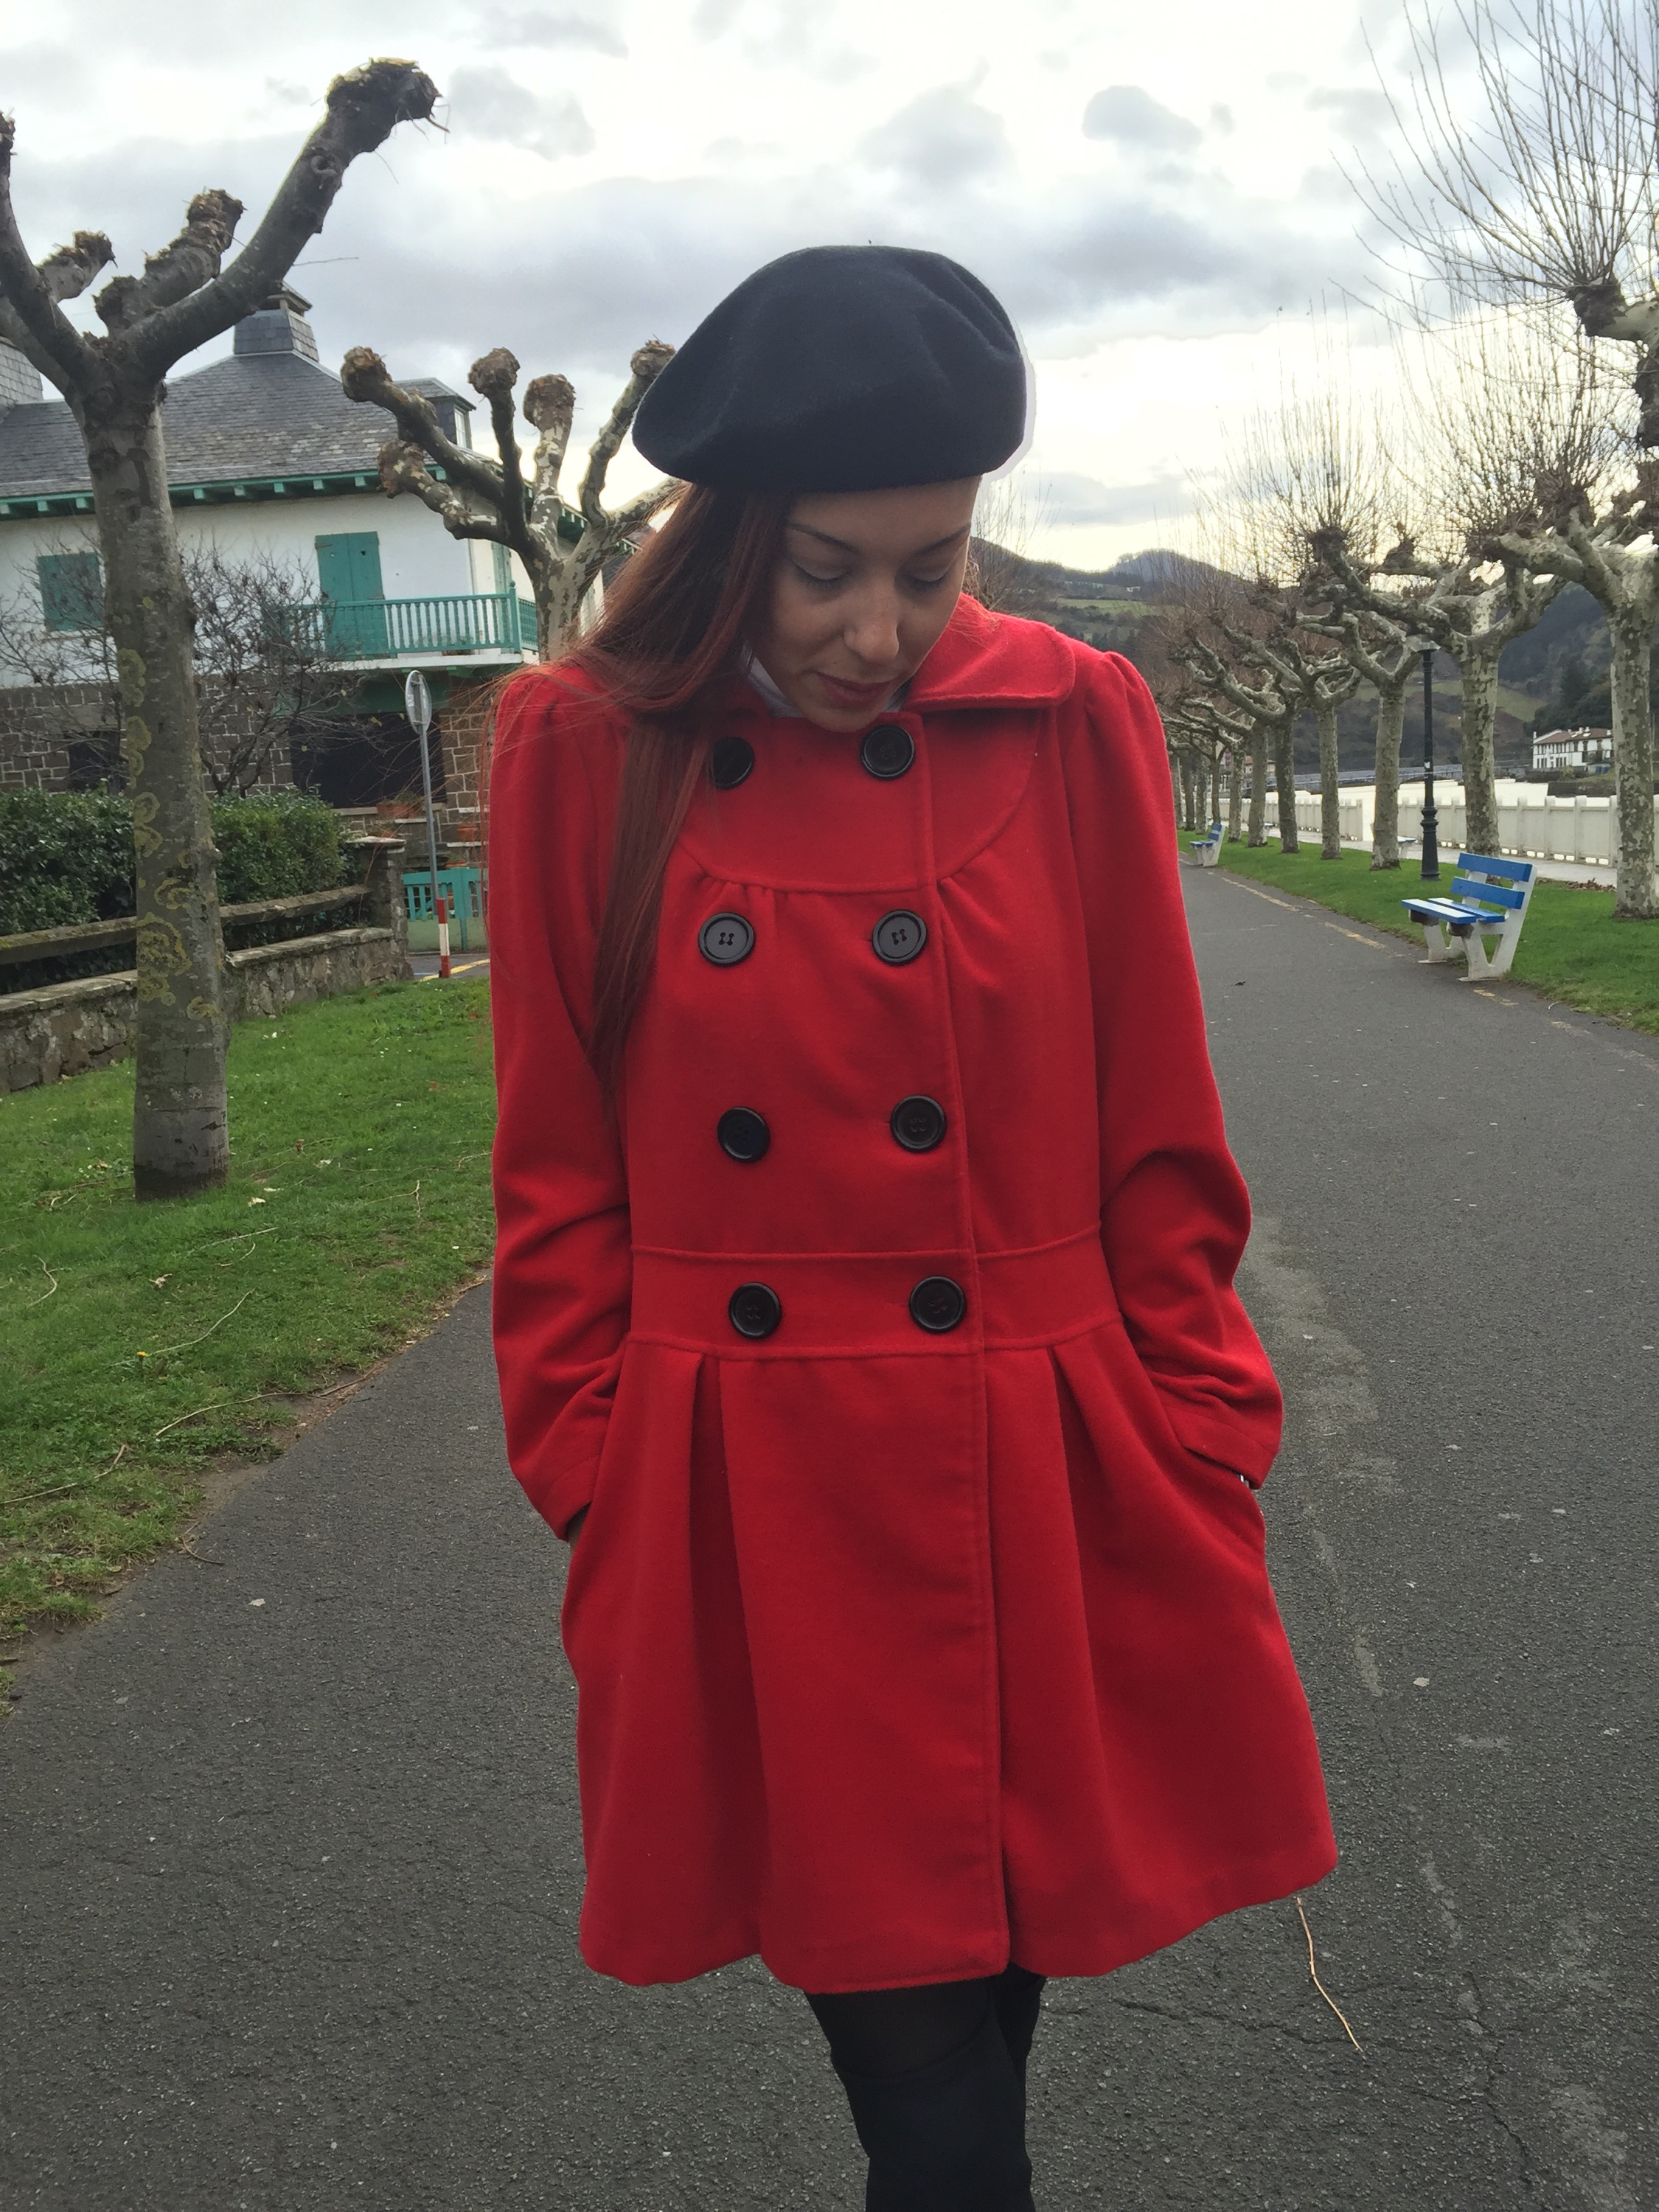 Abrigo rojo - Red coat